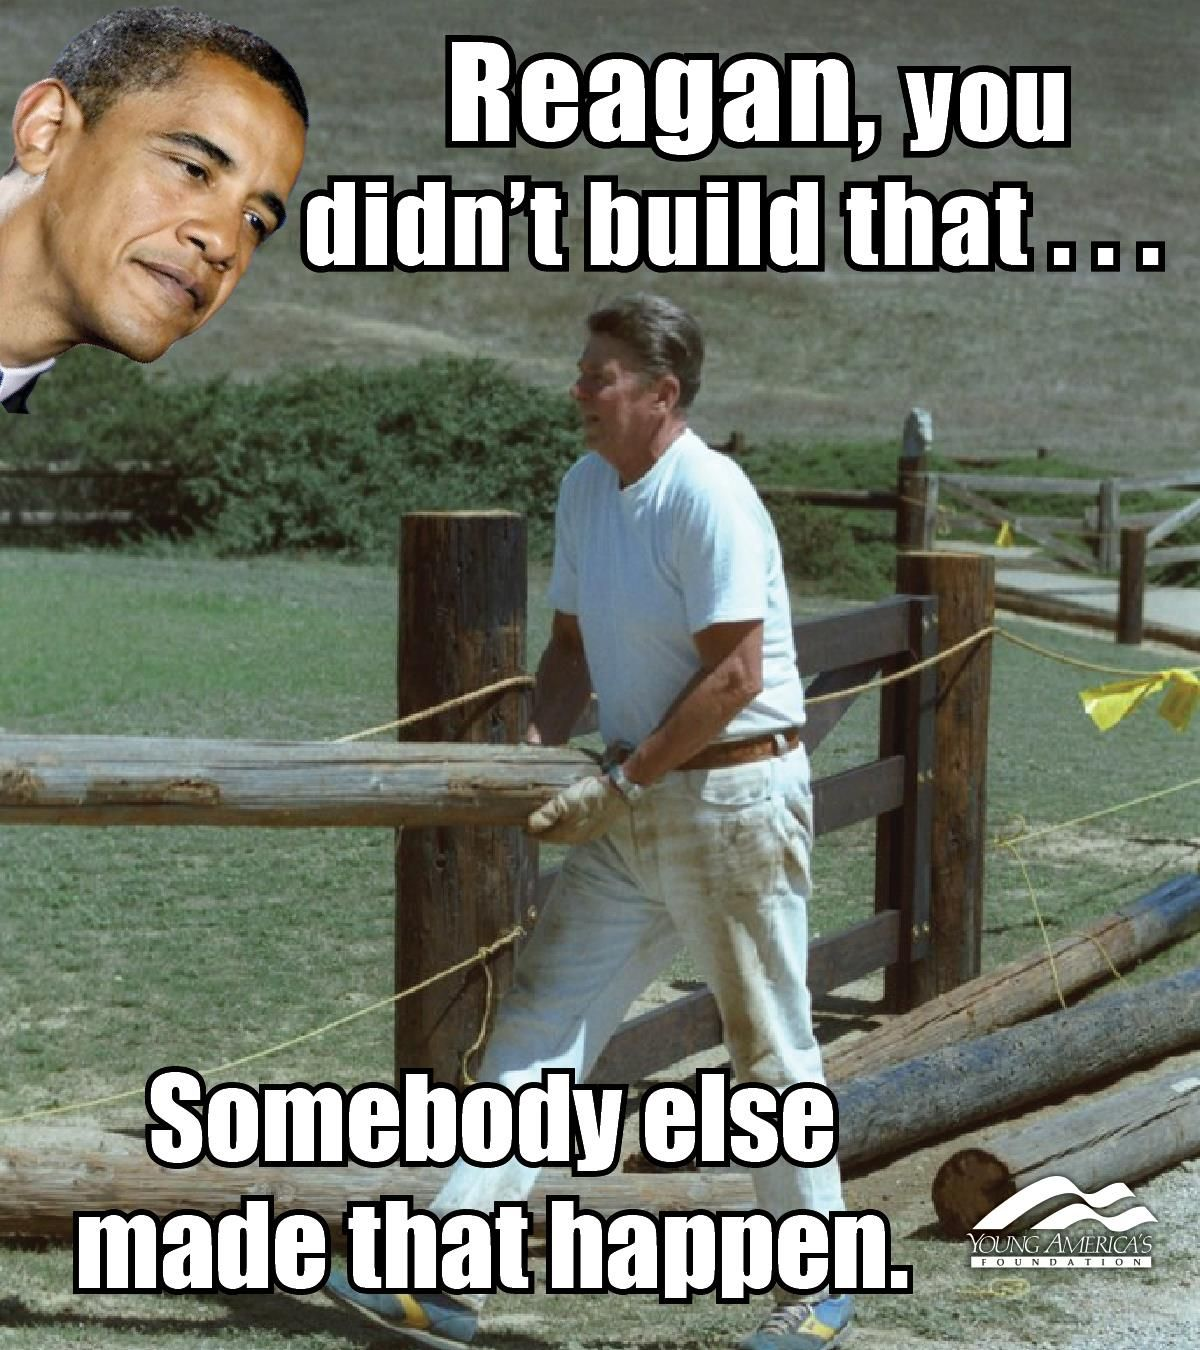 This is OBAMA'S MENTALITY.   WHY?  BECAUSE - he has not accomplished ONE thing on his own.  His college education was paid for by a SAUDI & Bill AYERS father.  Strings have been pulled to advance every aspect of his RISE to POWER by unknown benefactors.  OBAMA had NOTHING BUT help.  He has done NOTHING on his own.  He is a ZERO.